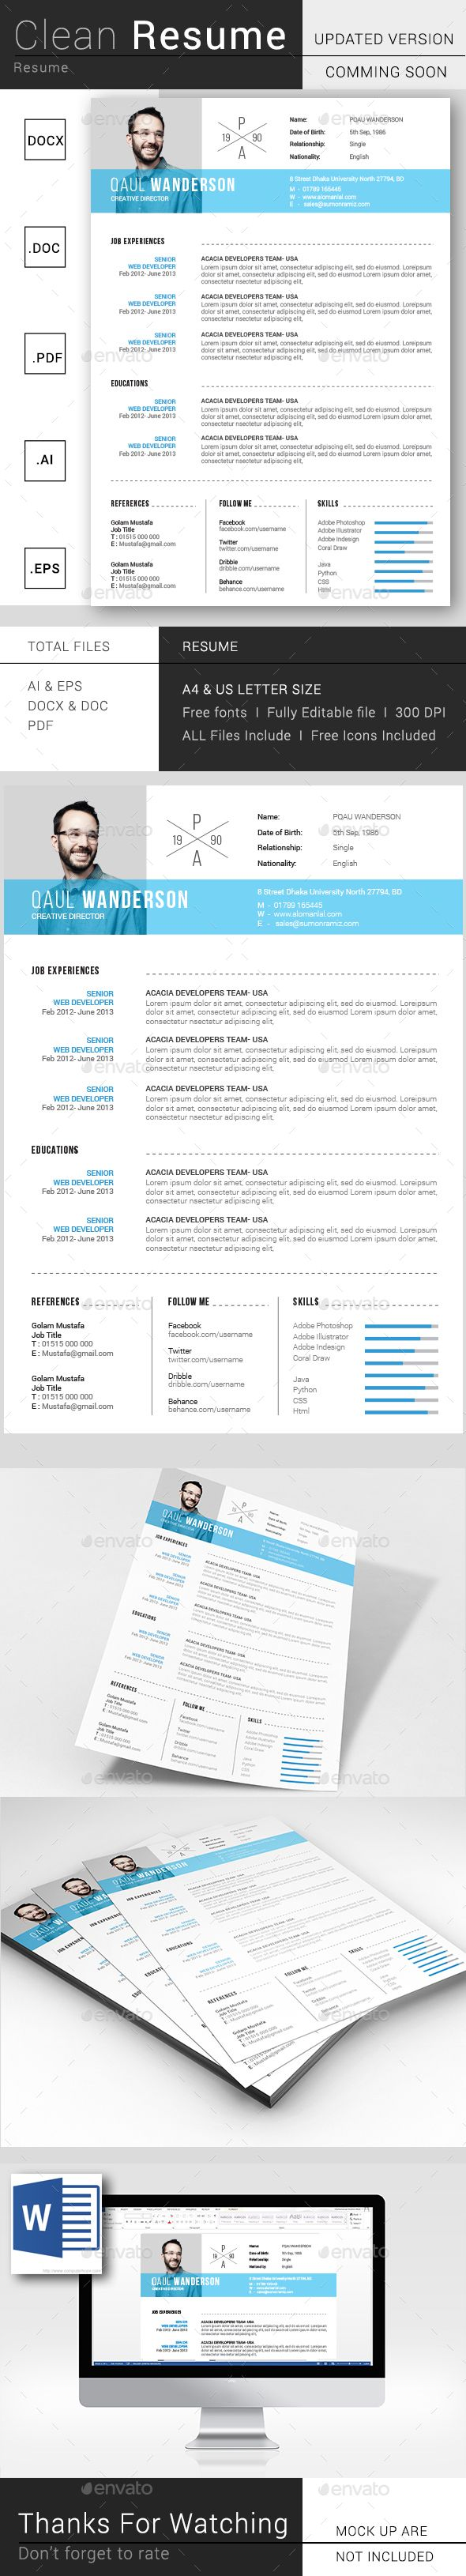 simple resume    cv template vector eps  ai illustrator  ms